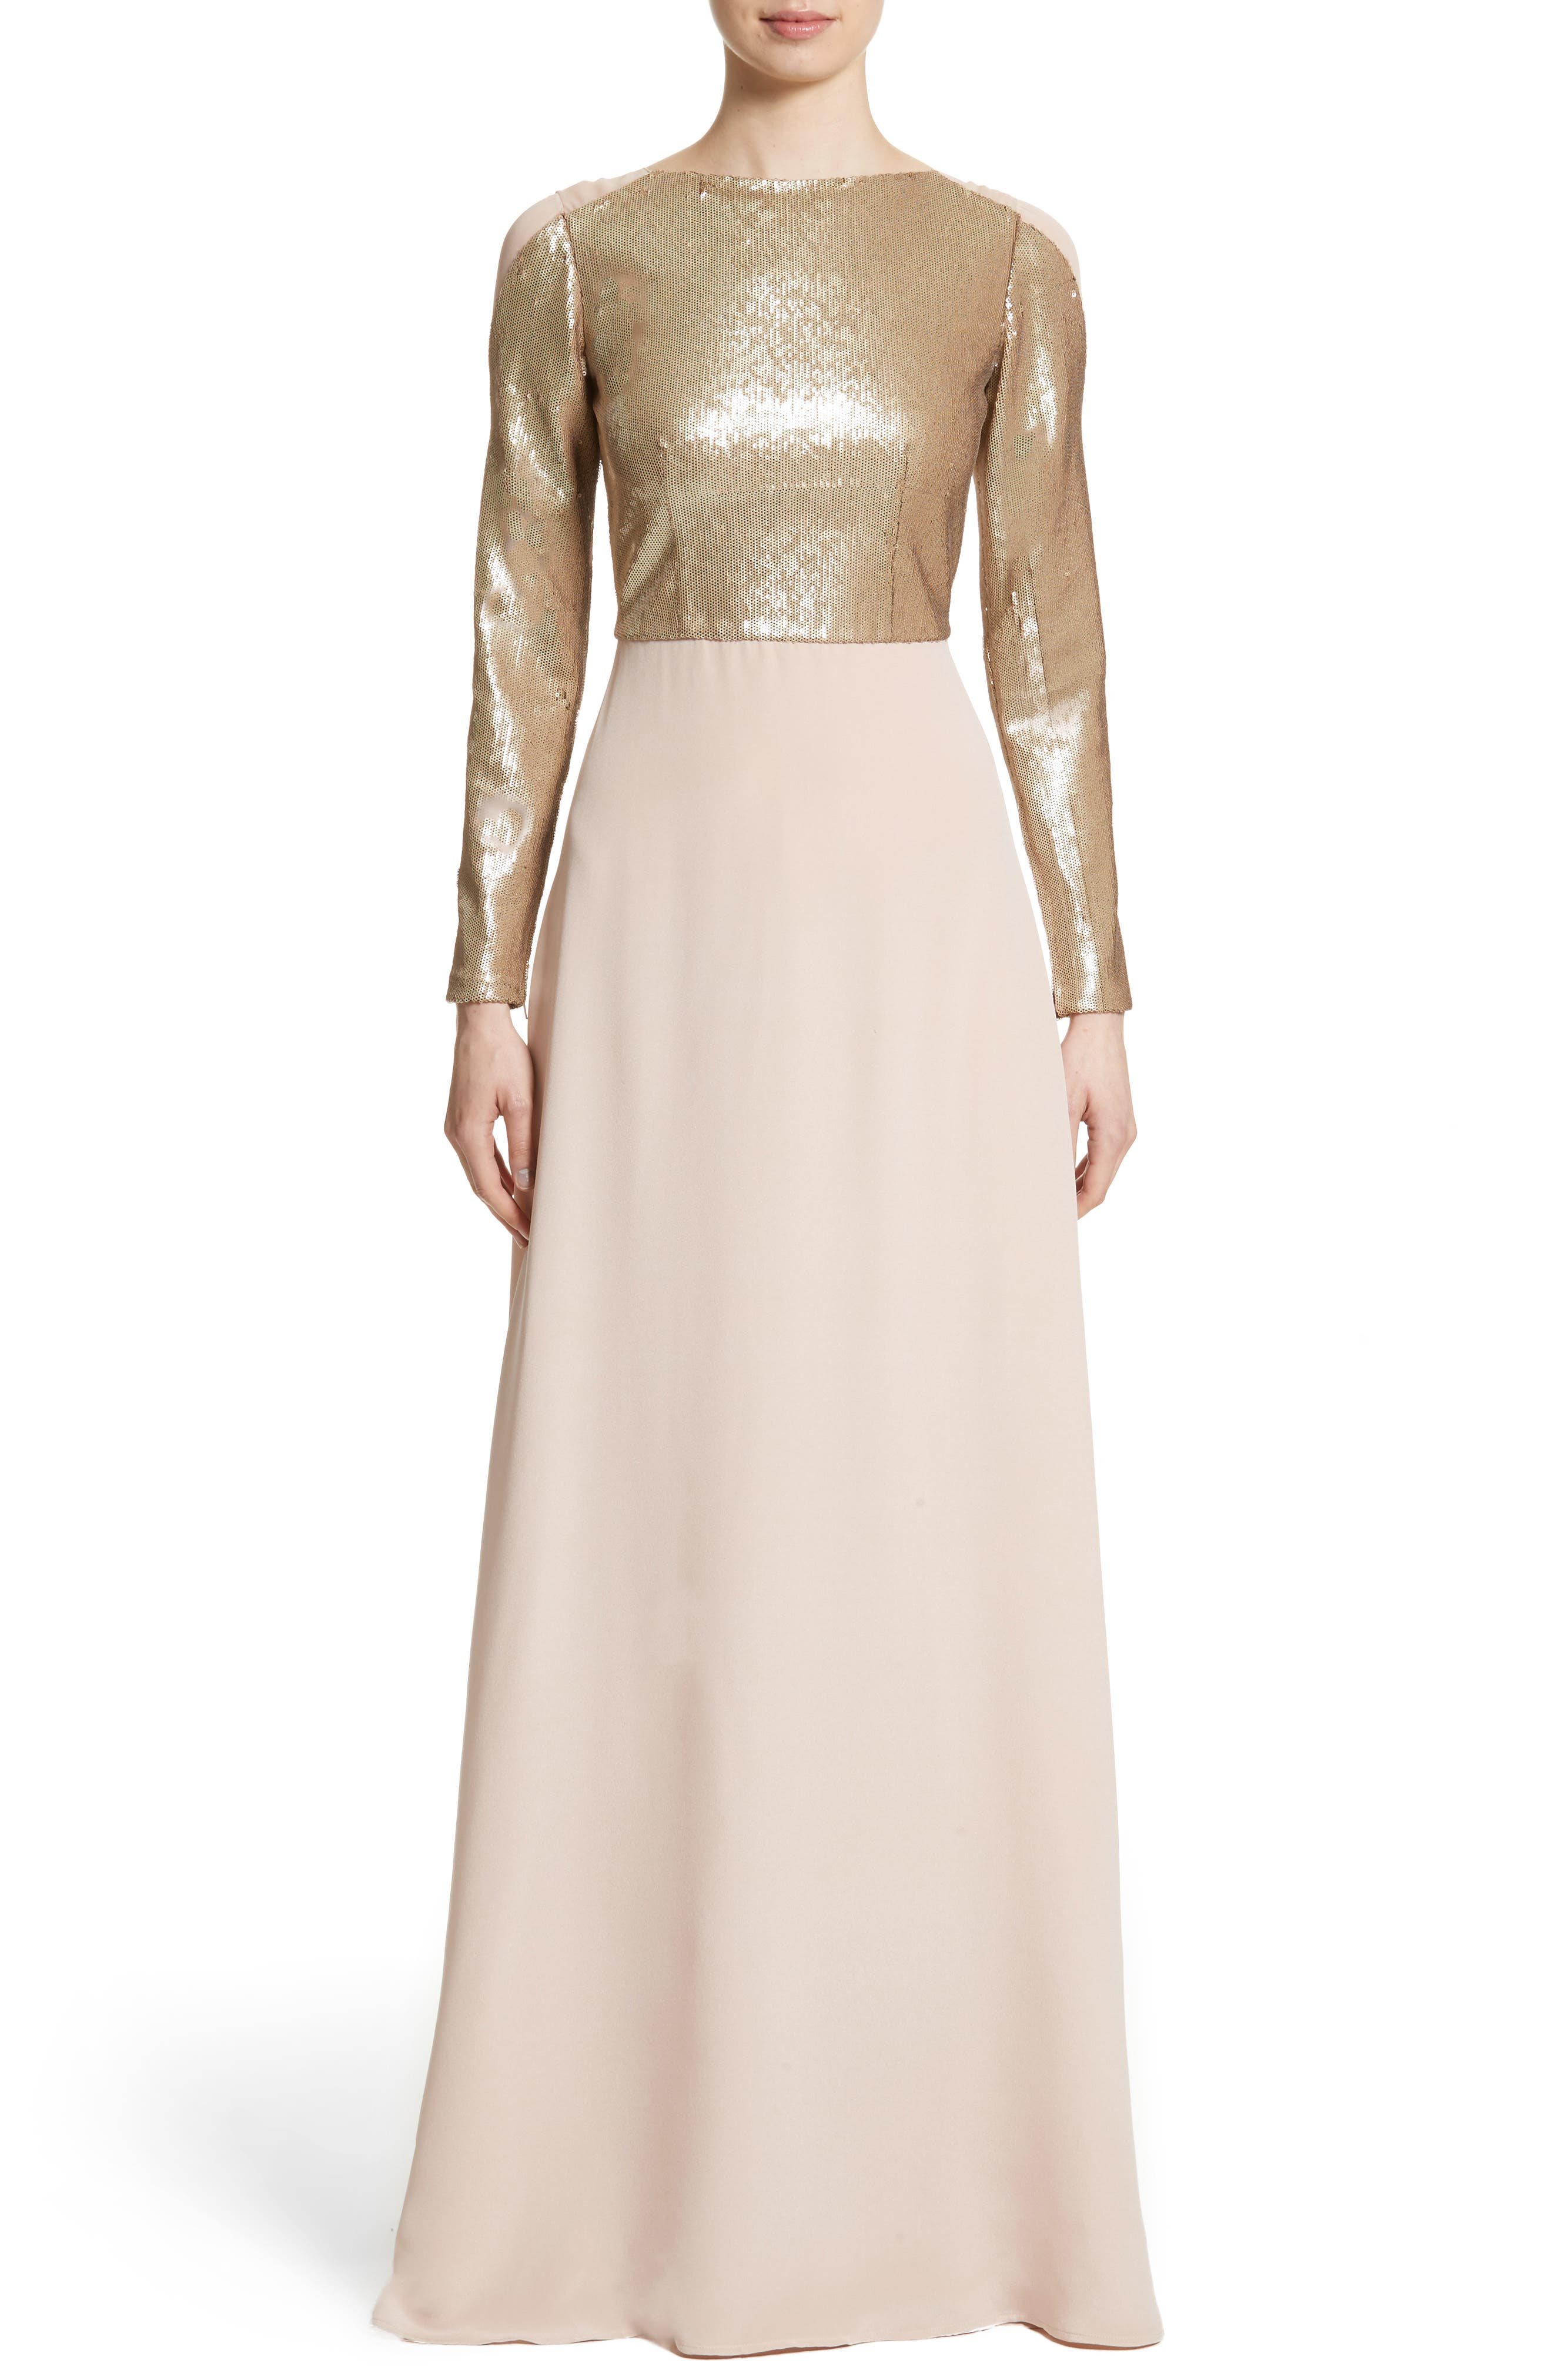 Alternate Image 1 Selected - Carolina Herrera Sequin Front A-Line Silk Gown